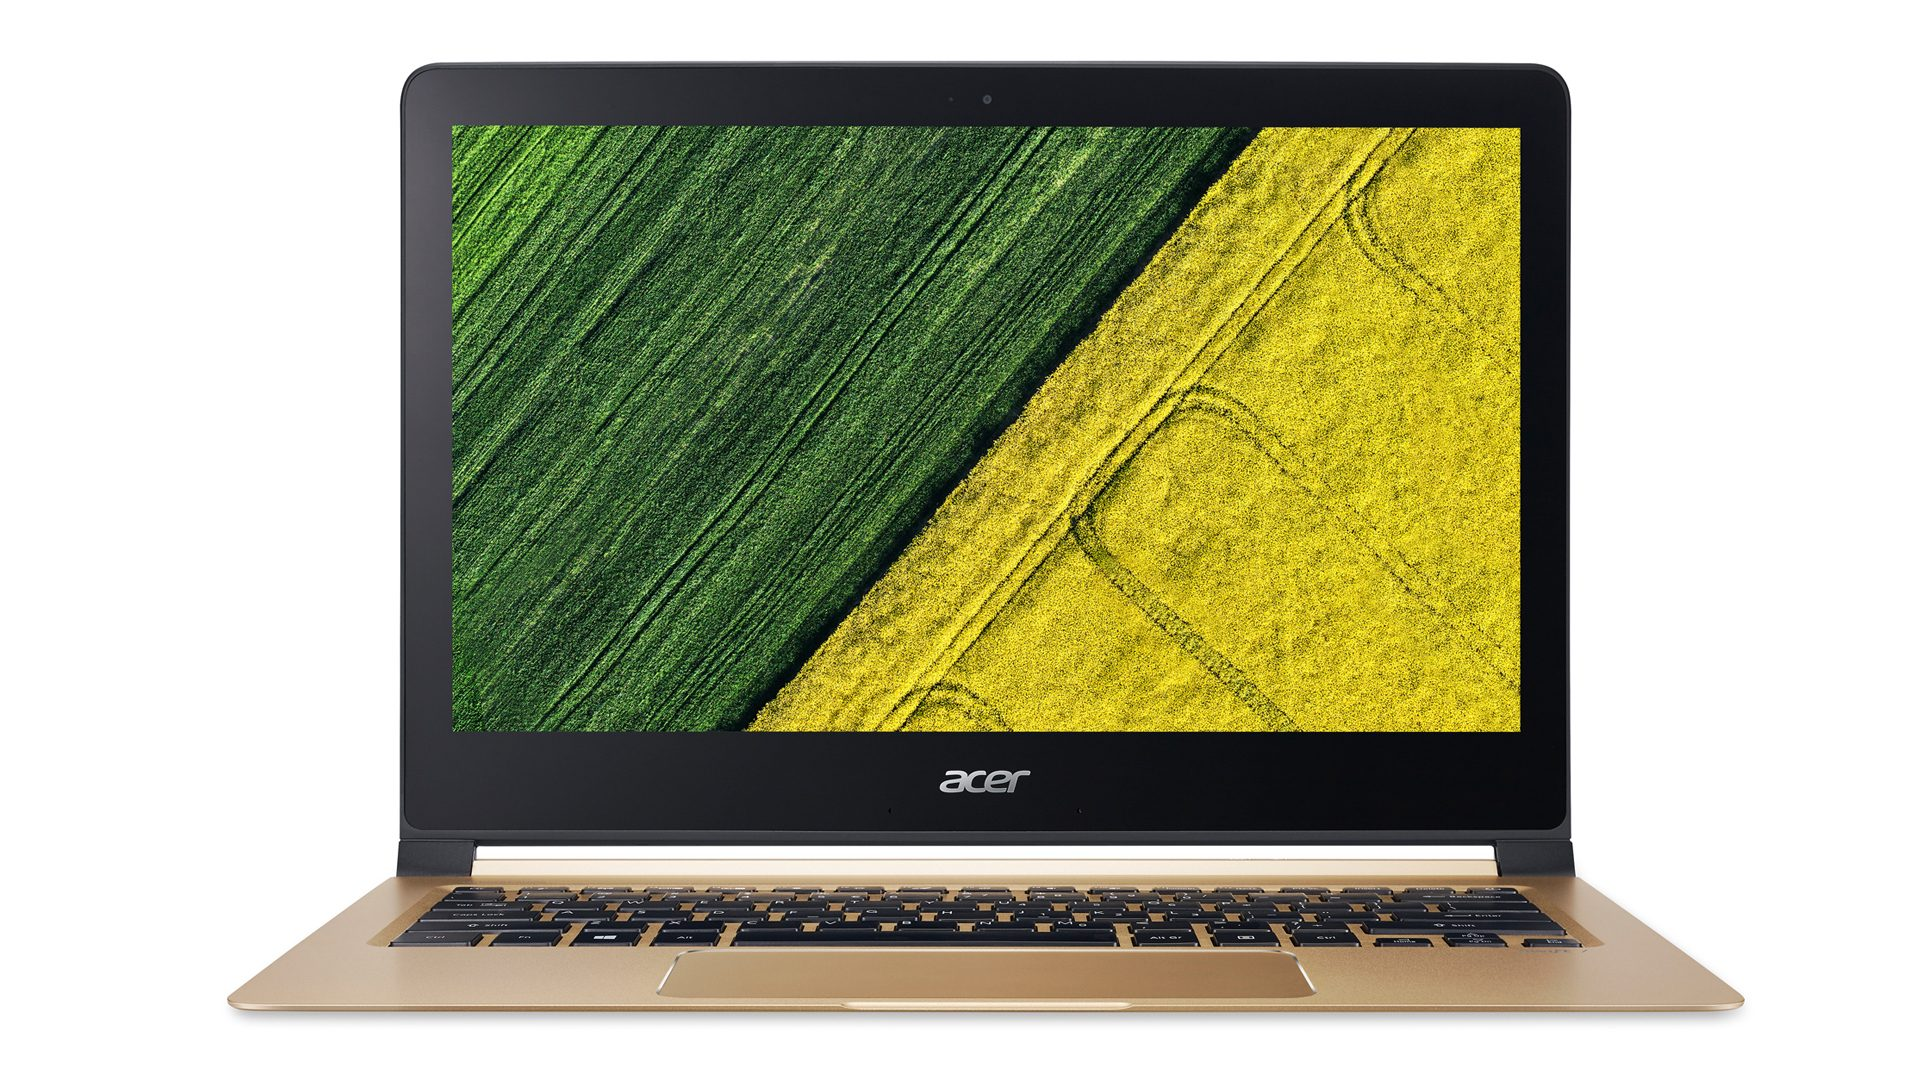 acer_swift7-ansichten_5